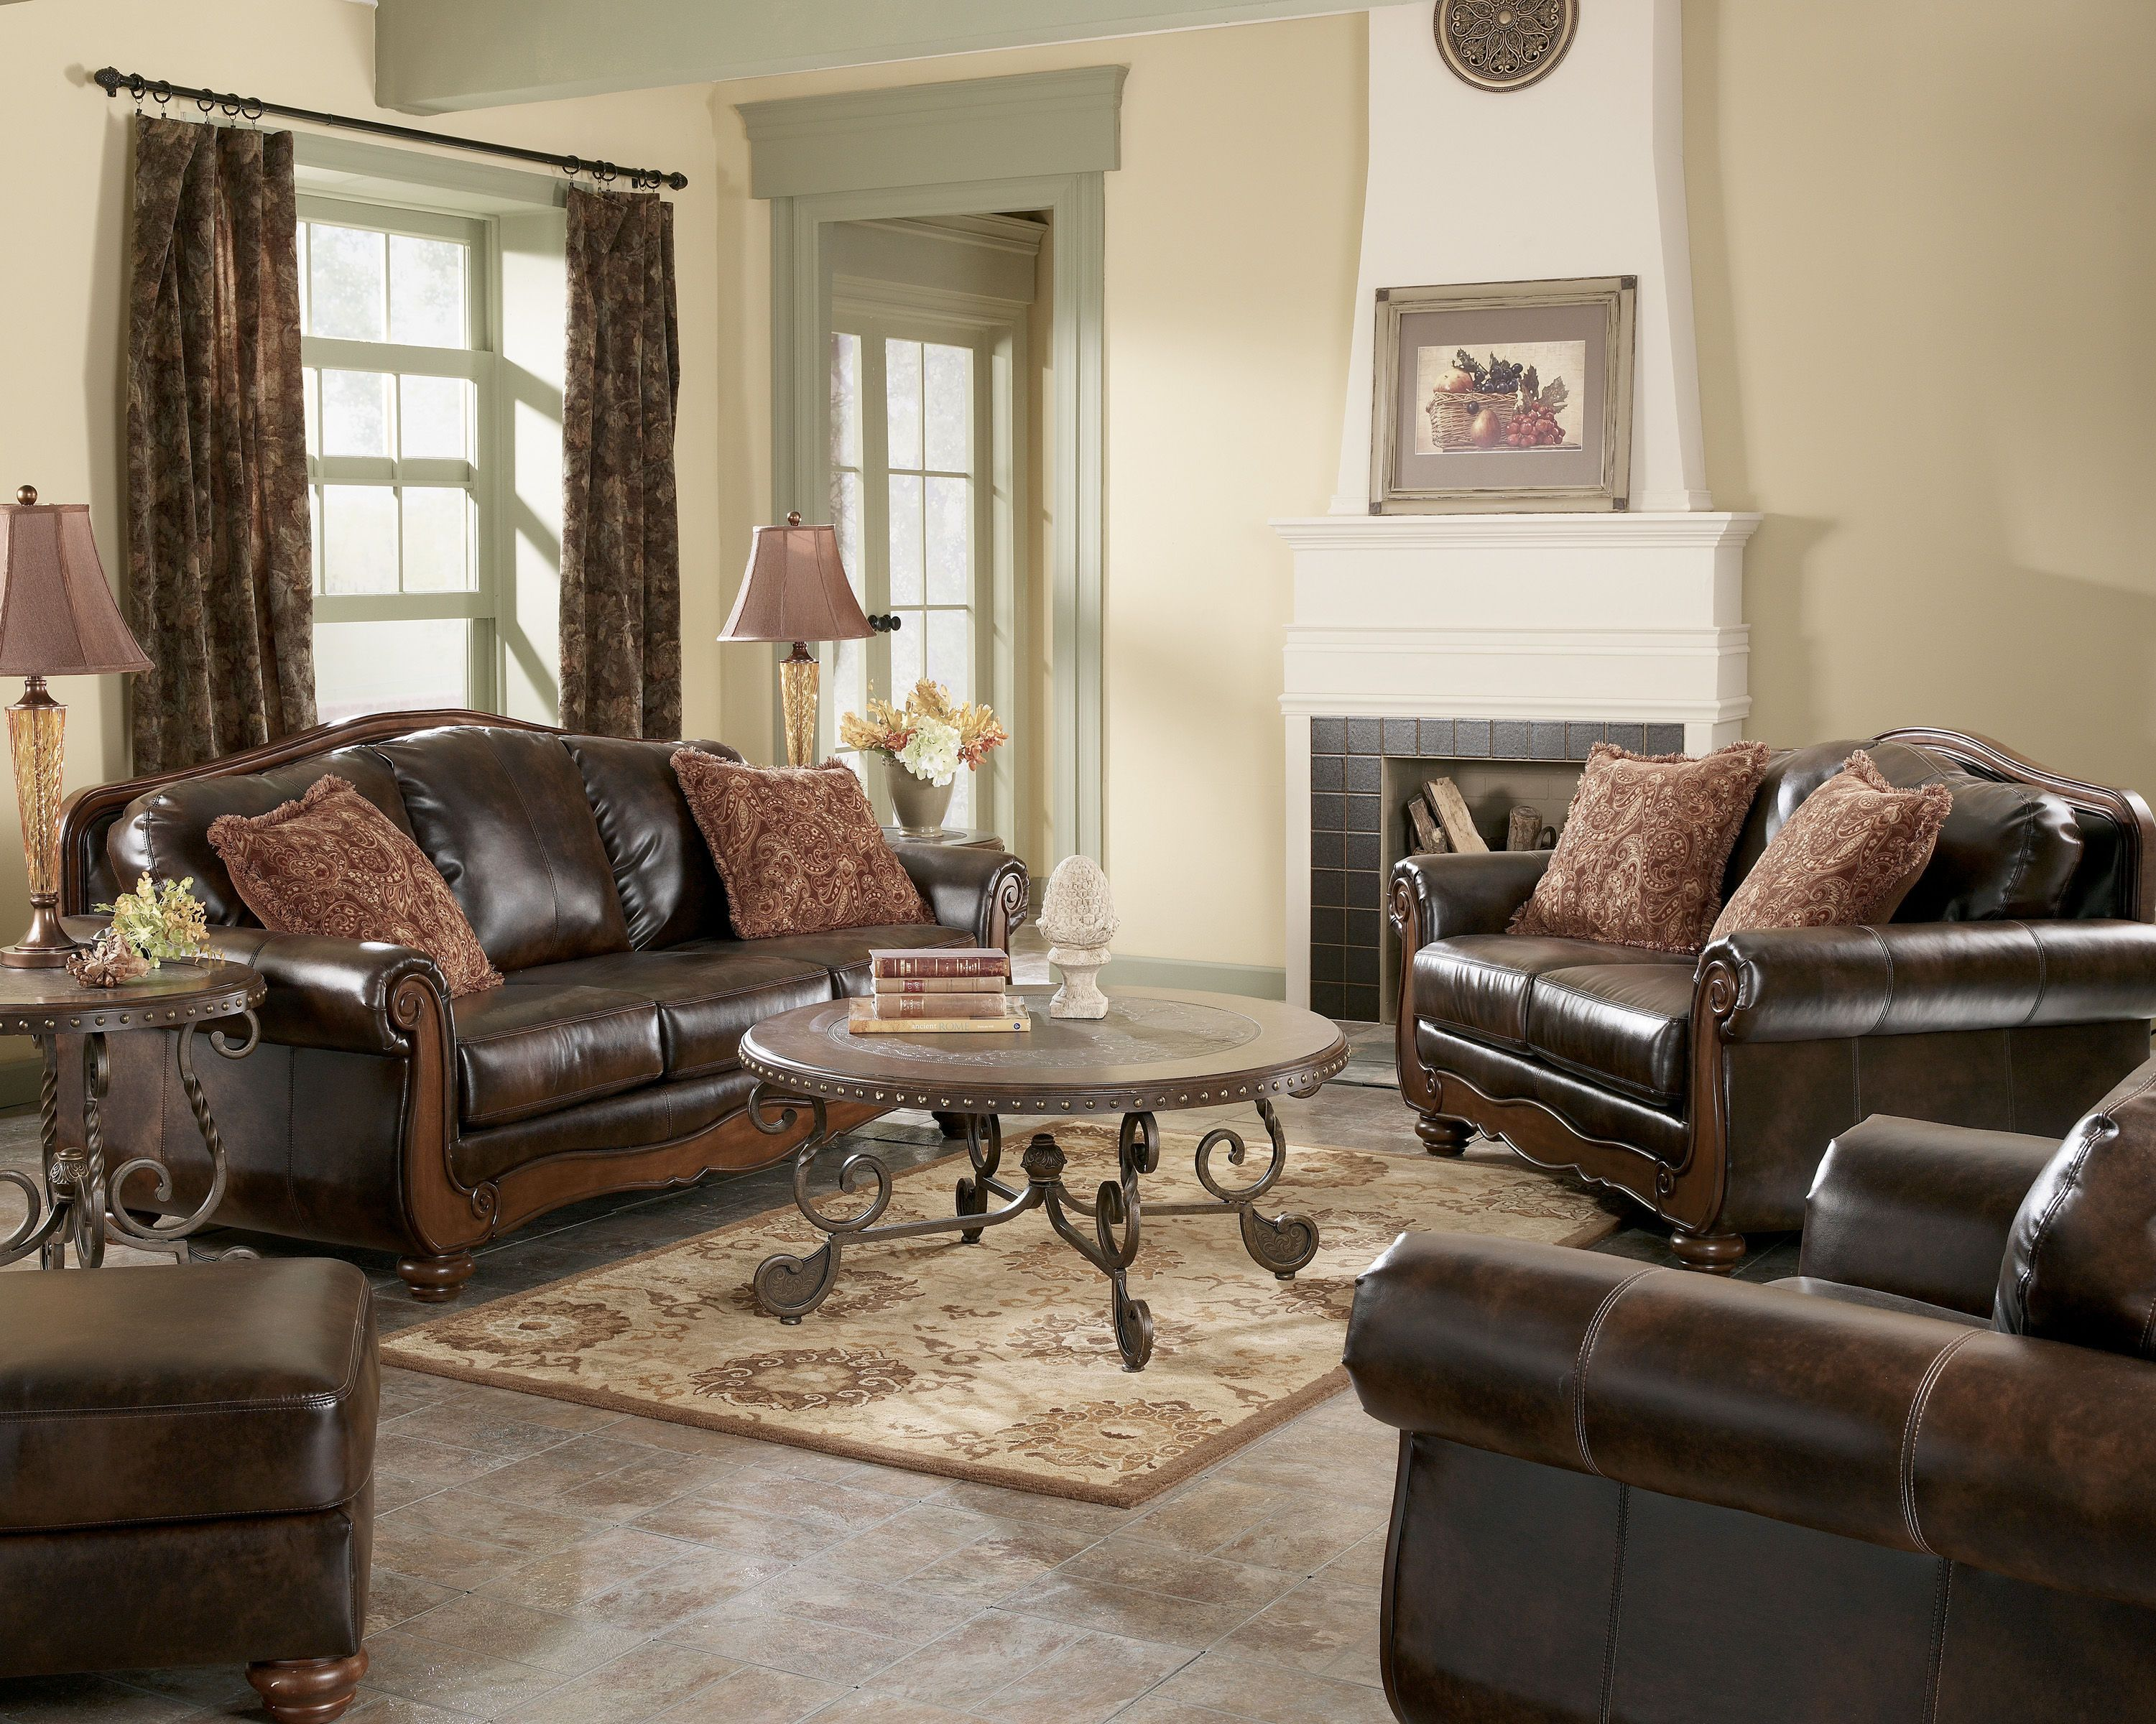 Remarkable Barcelona Traditional Antique Faux Leather Living Room Set Machost Co Dining Chair Design Ideas Machostcouk